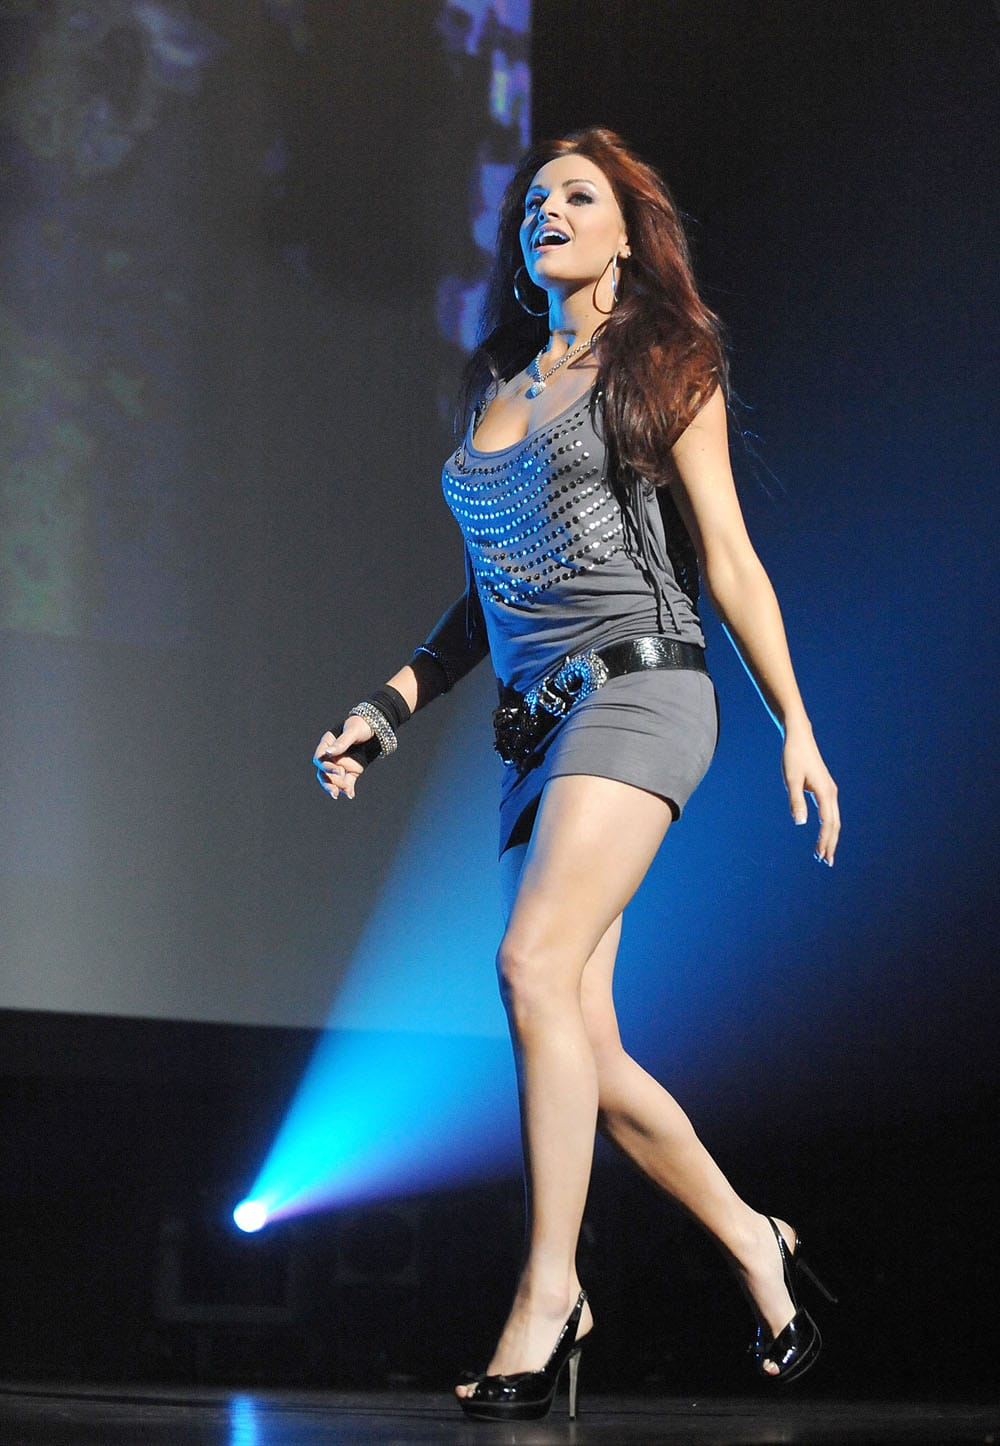 Image Result For How Tall Is Maria Kanellis